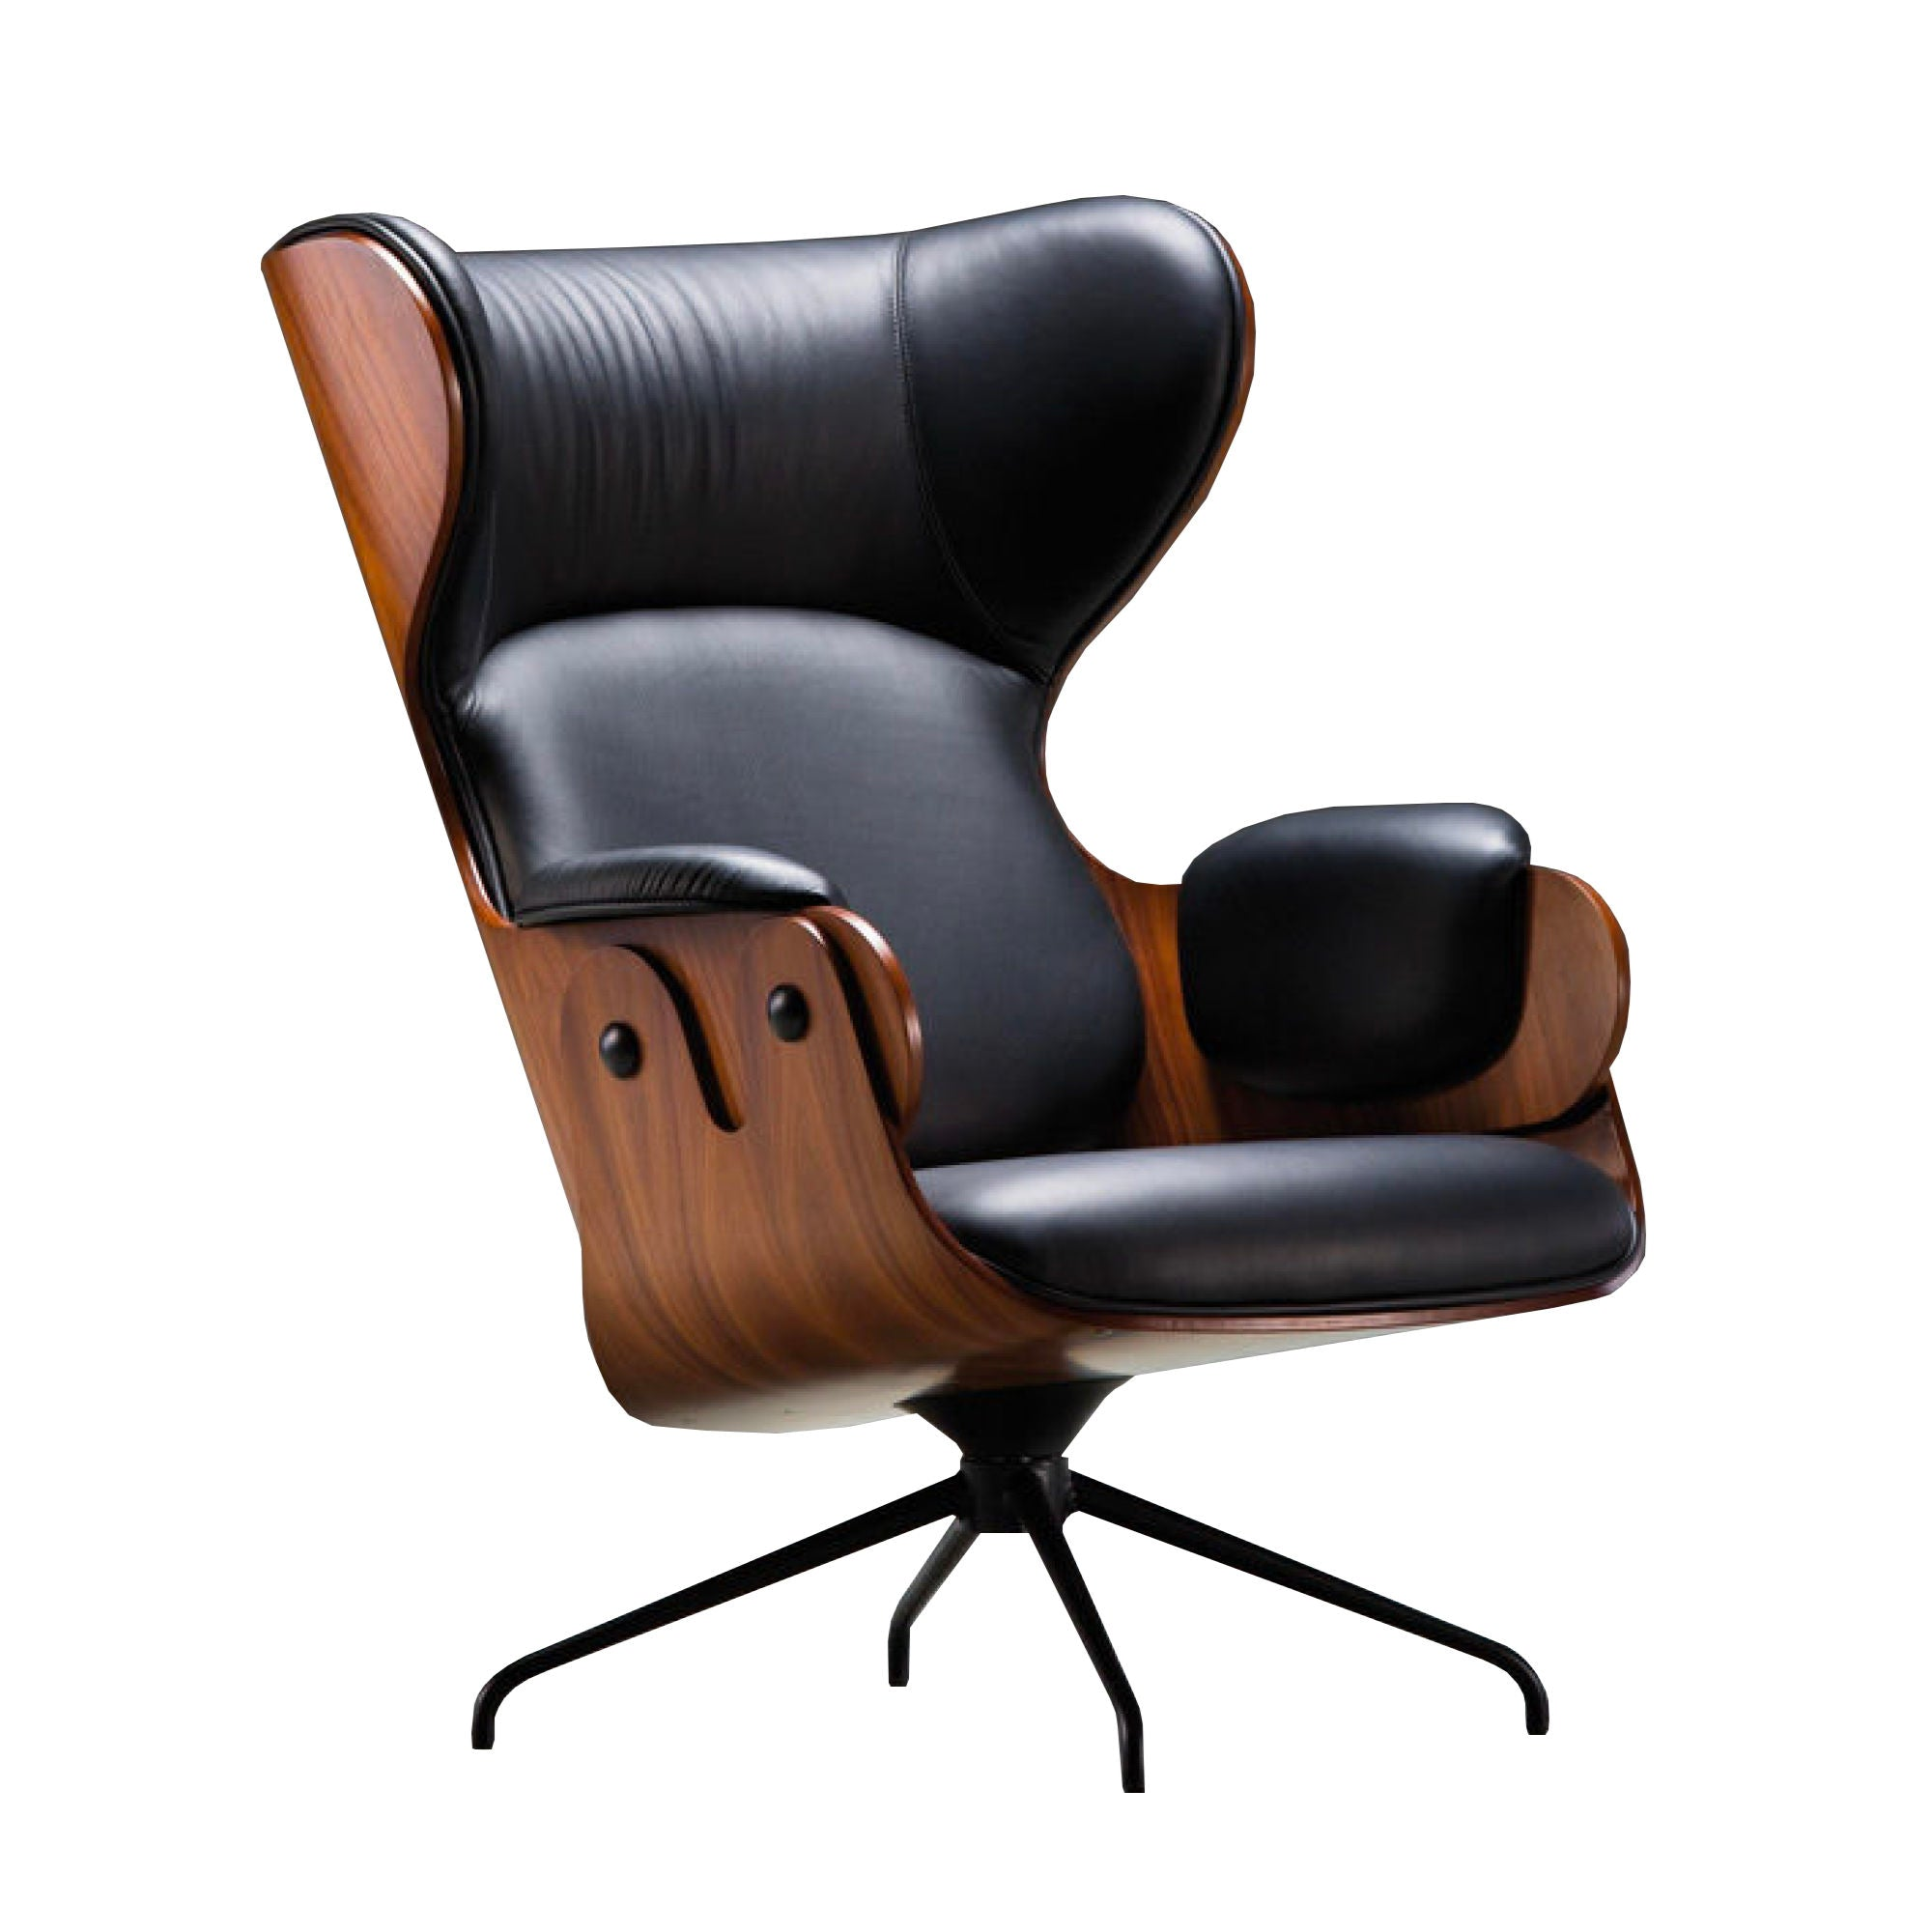 BD Barcelona Design Lounger , Walnut-Black Leather